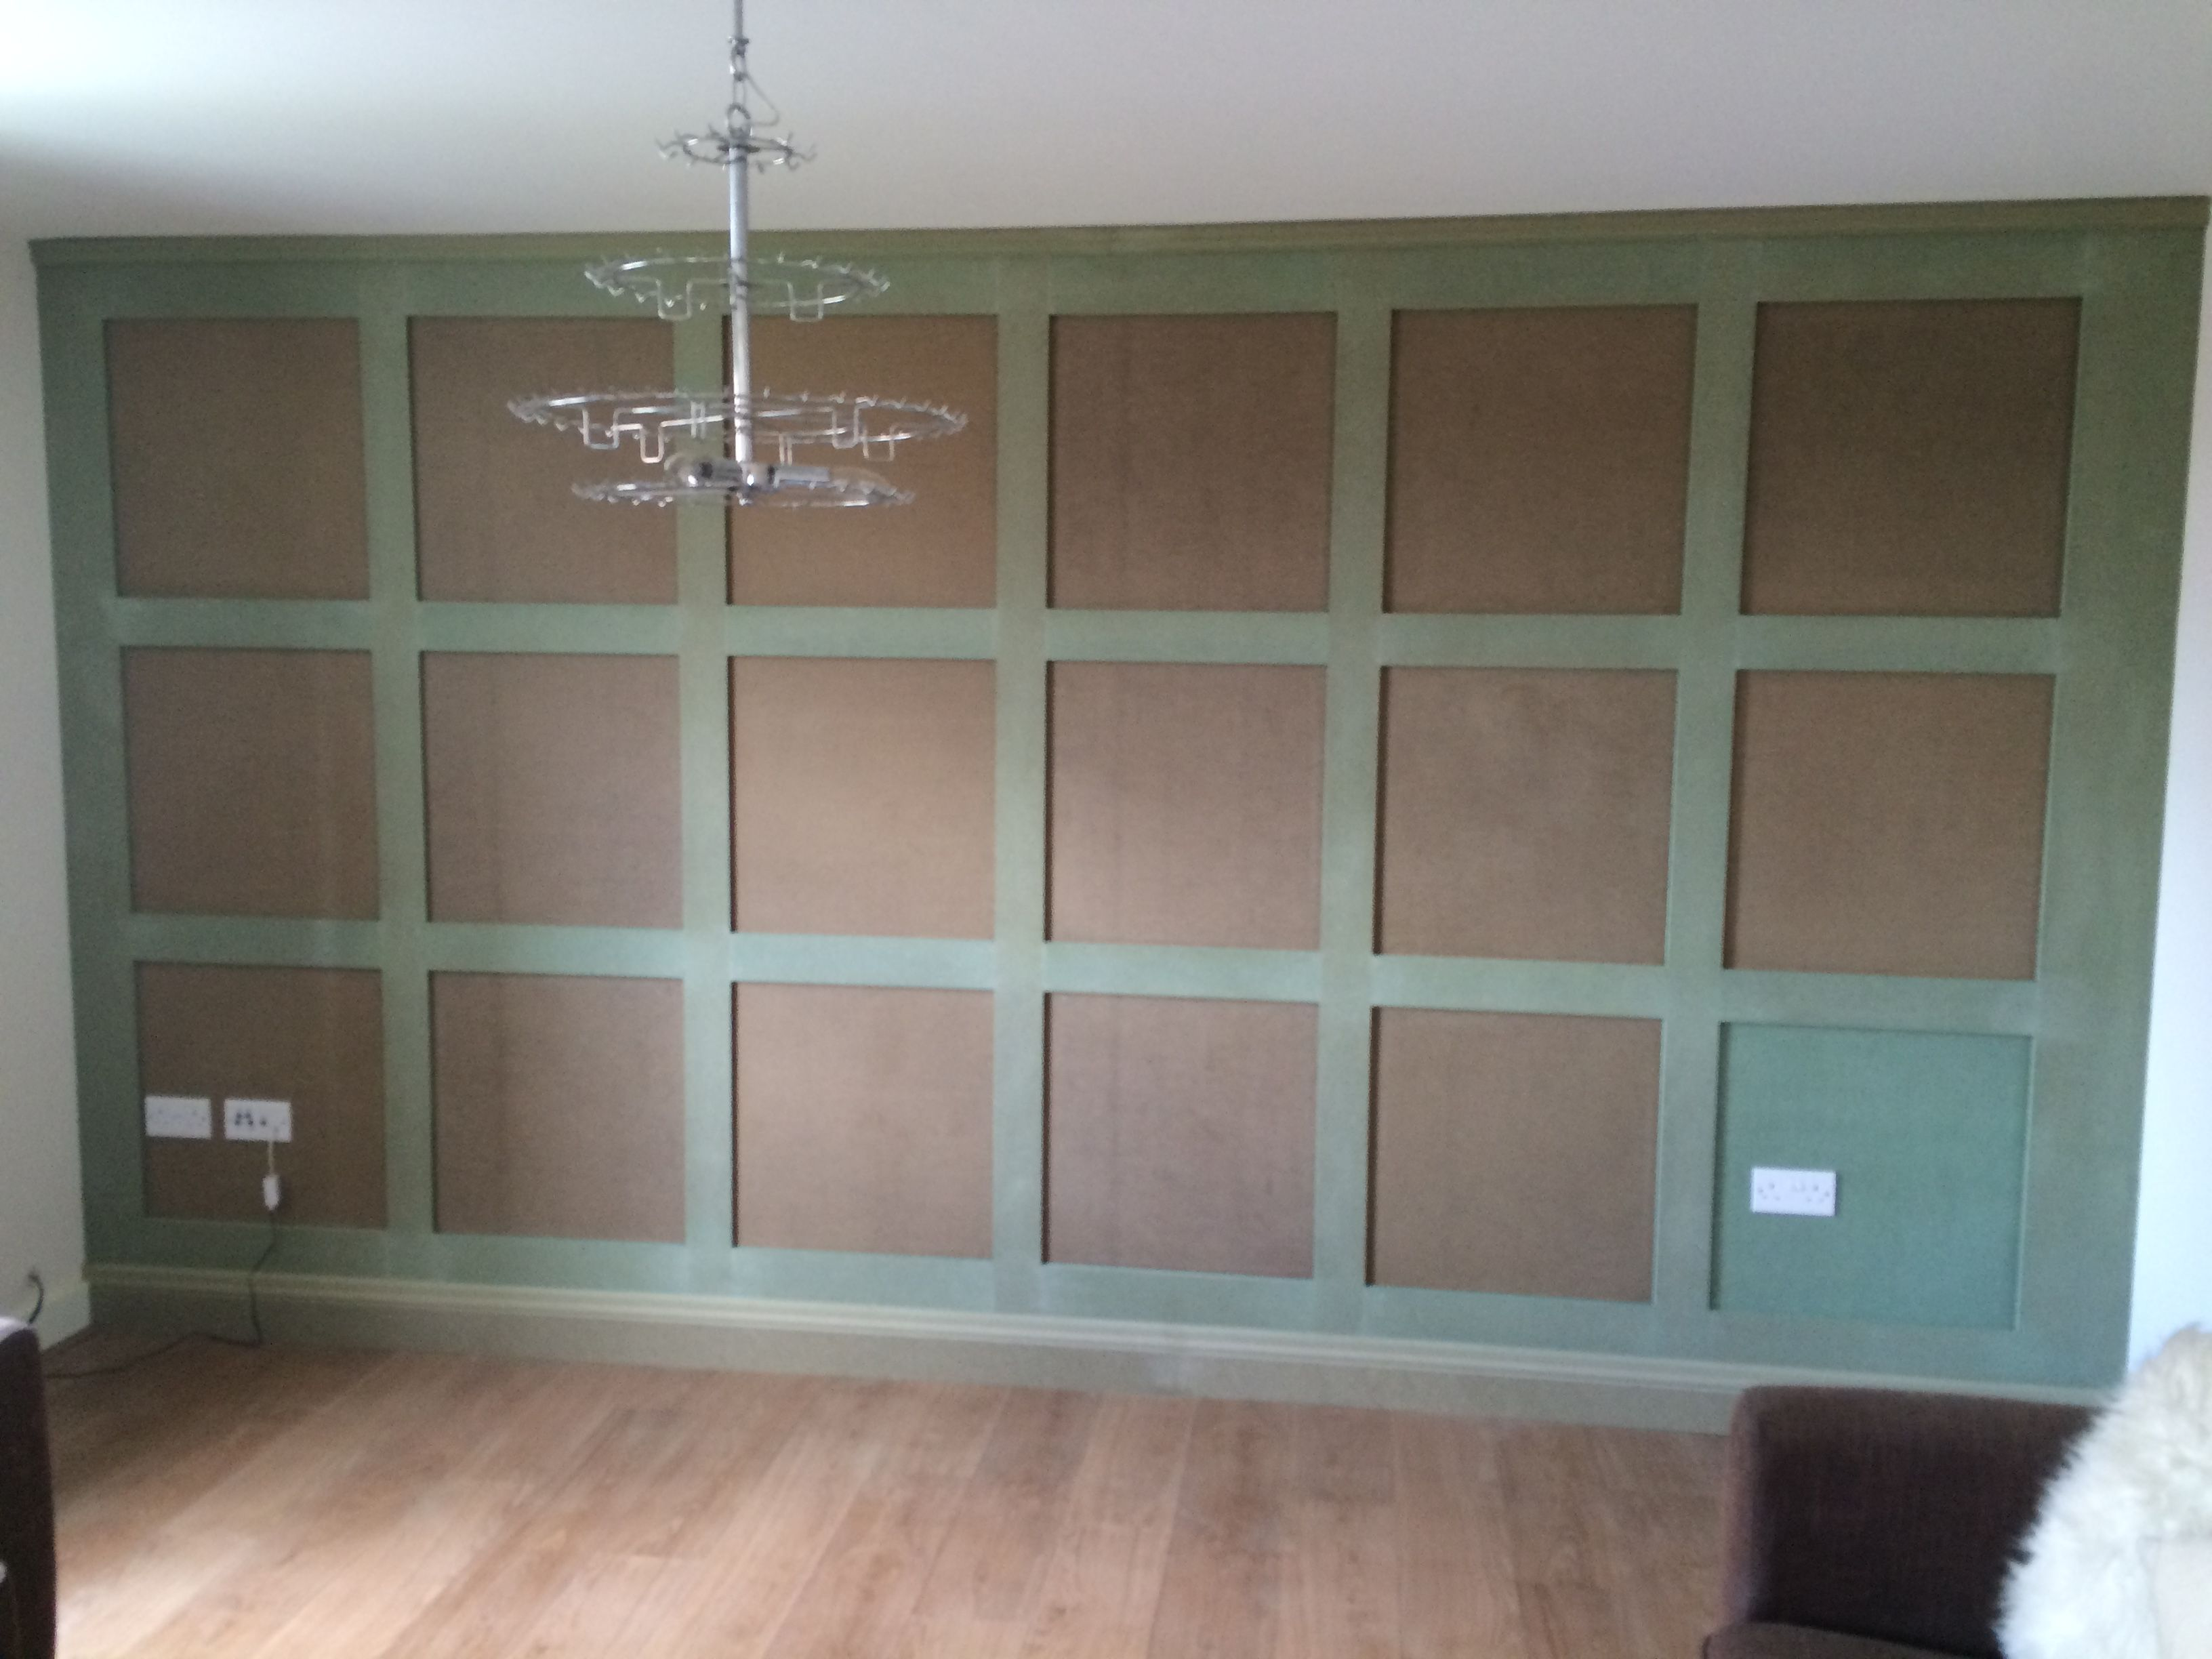 Shaker Panelling Unfinished Ie Ready To Prime And Paint Feature Wall By Wall Panelling Experts Painted Feature Wall Wall Paneling Bedroom Bed Design